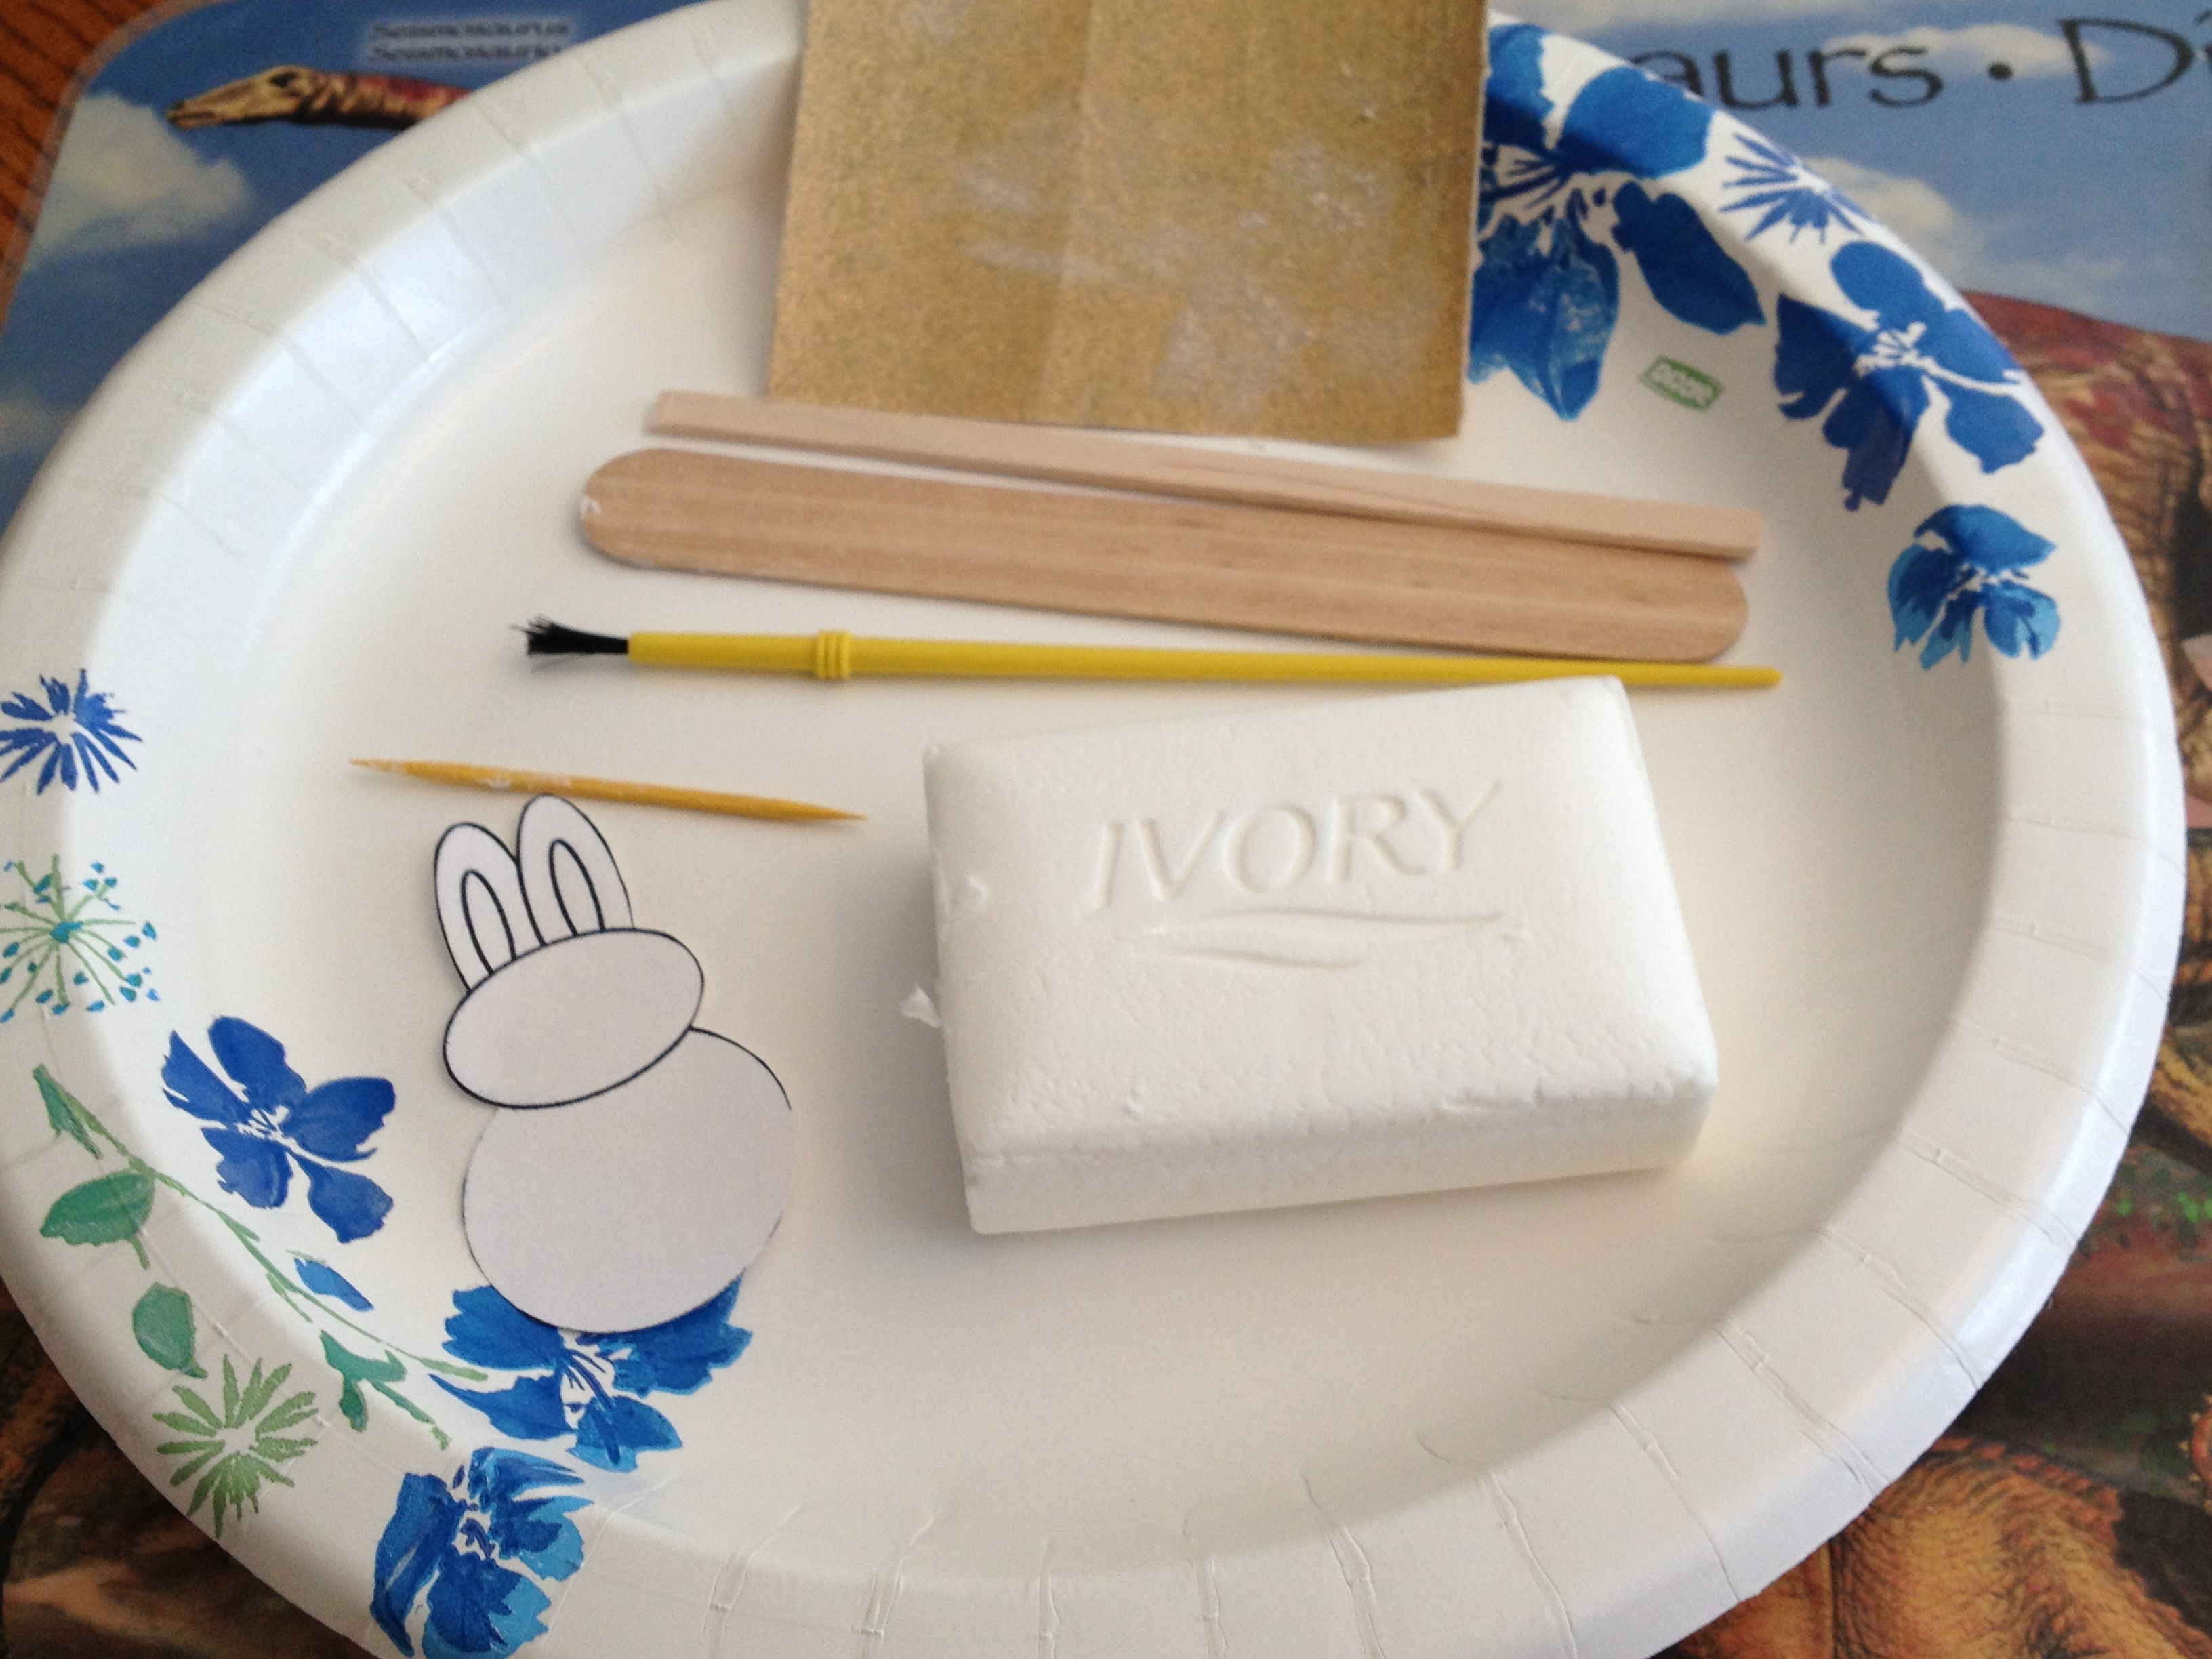 Soap carving pictures and ideas on stem education caucus